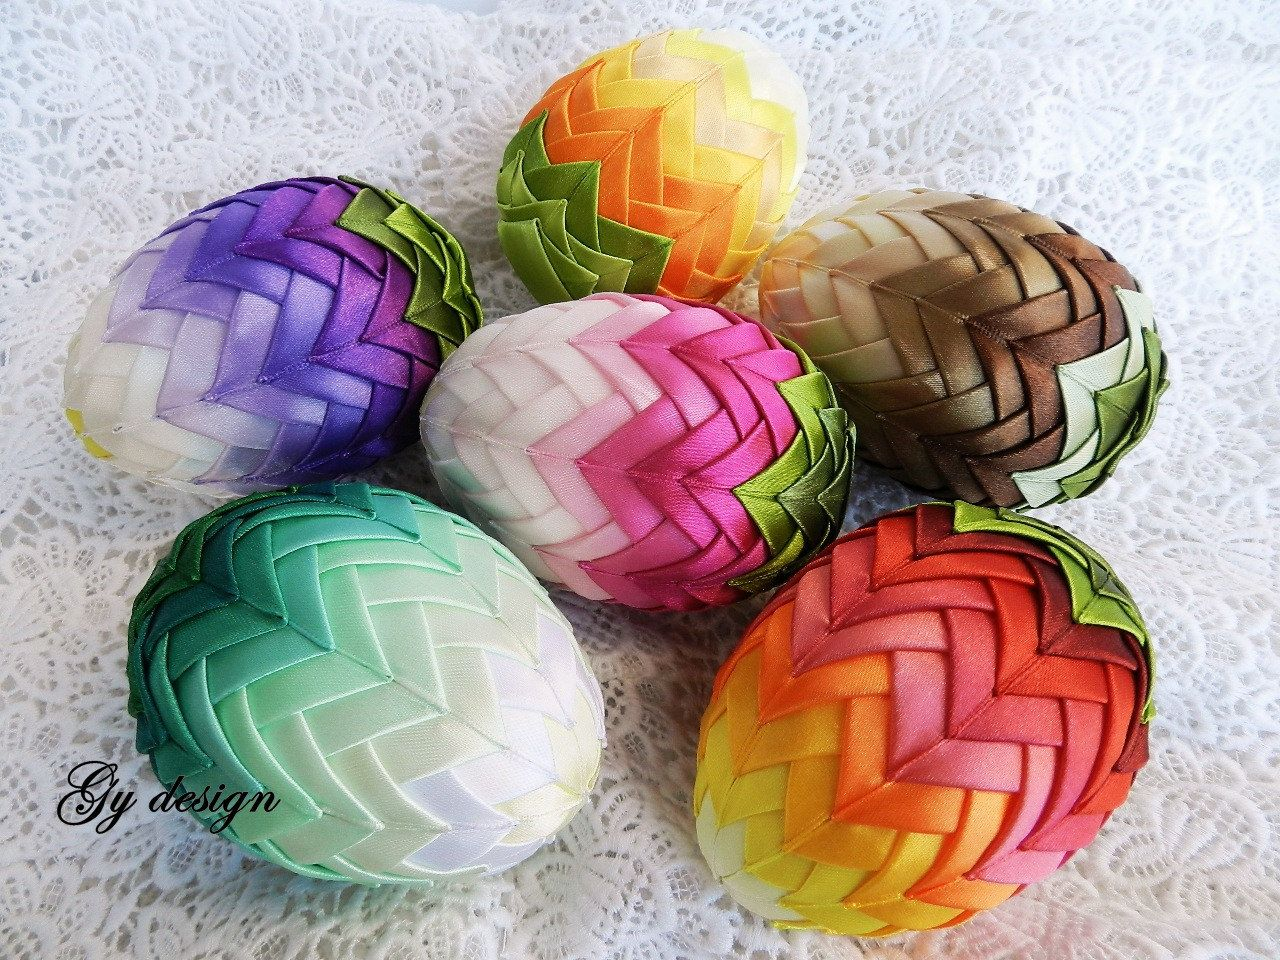 Popular items for easter eggs on Etsy | Easter | Pinterest ...